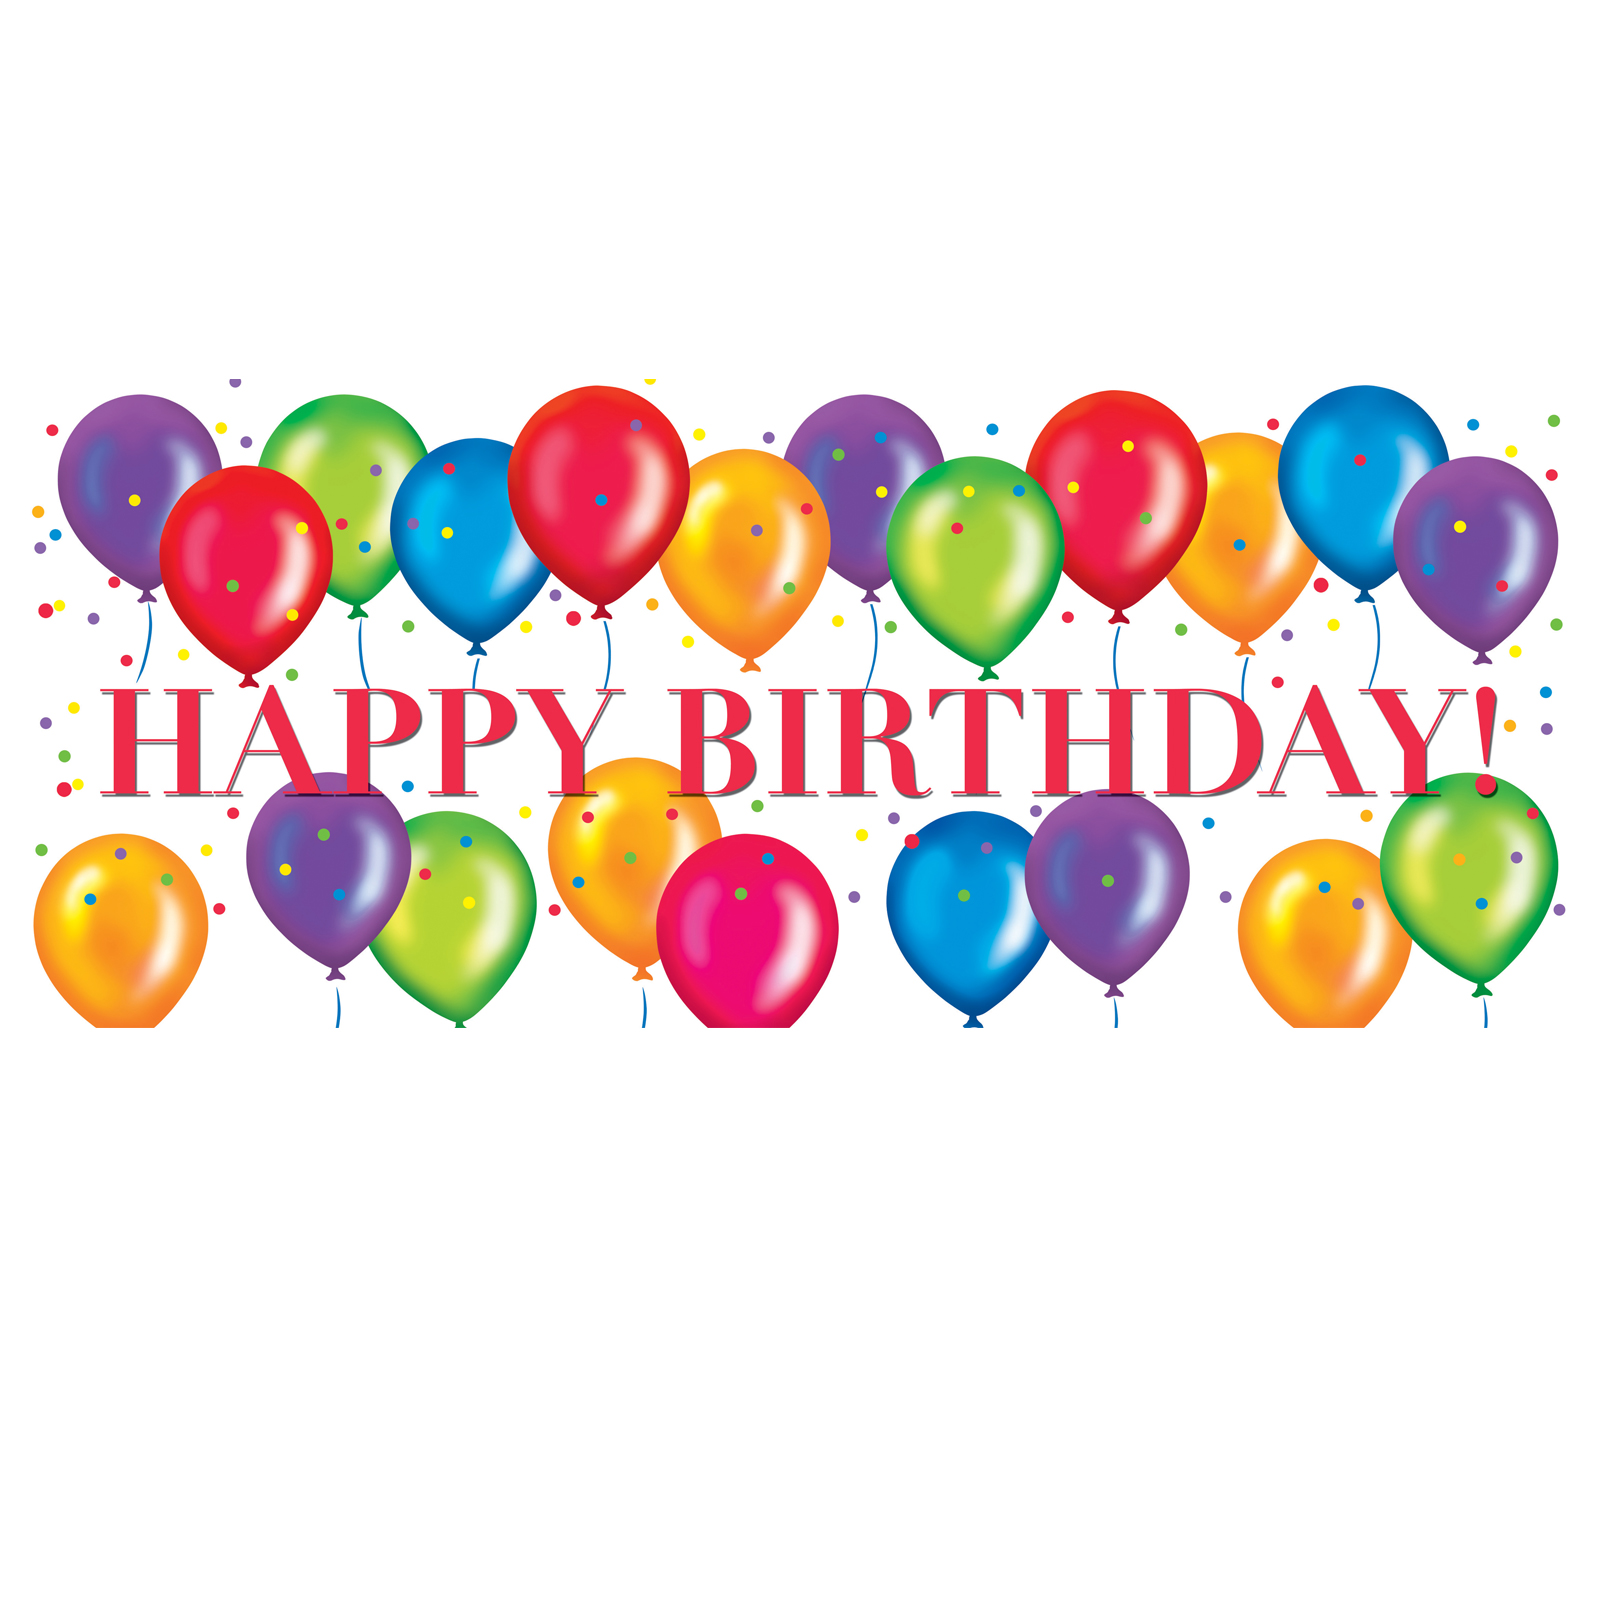 Animated Happy Birthday Pictures   Desktop Backgrounds 1600x1600